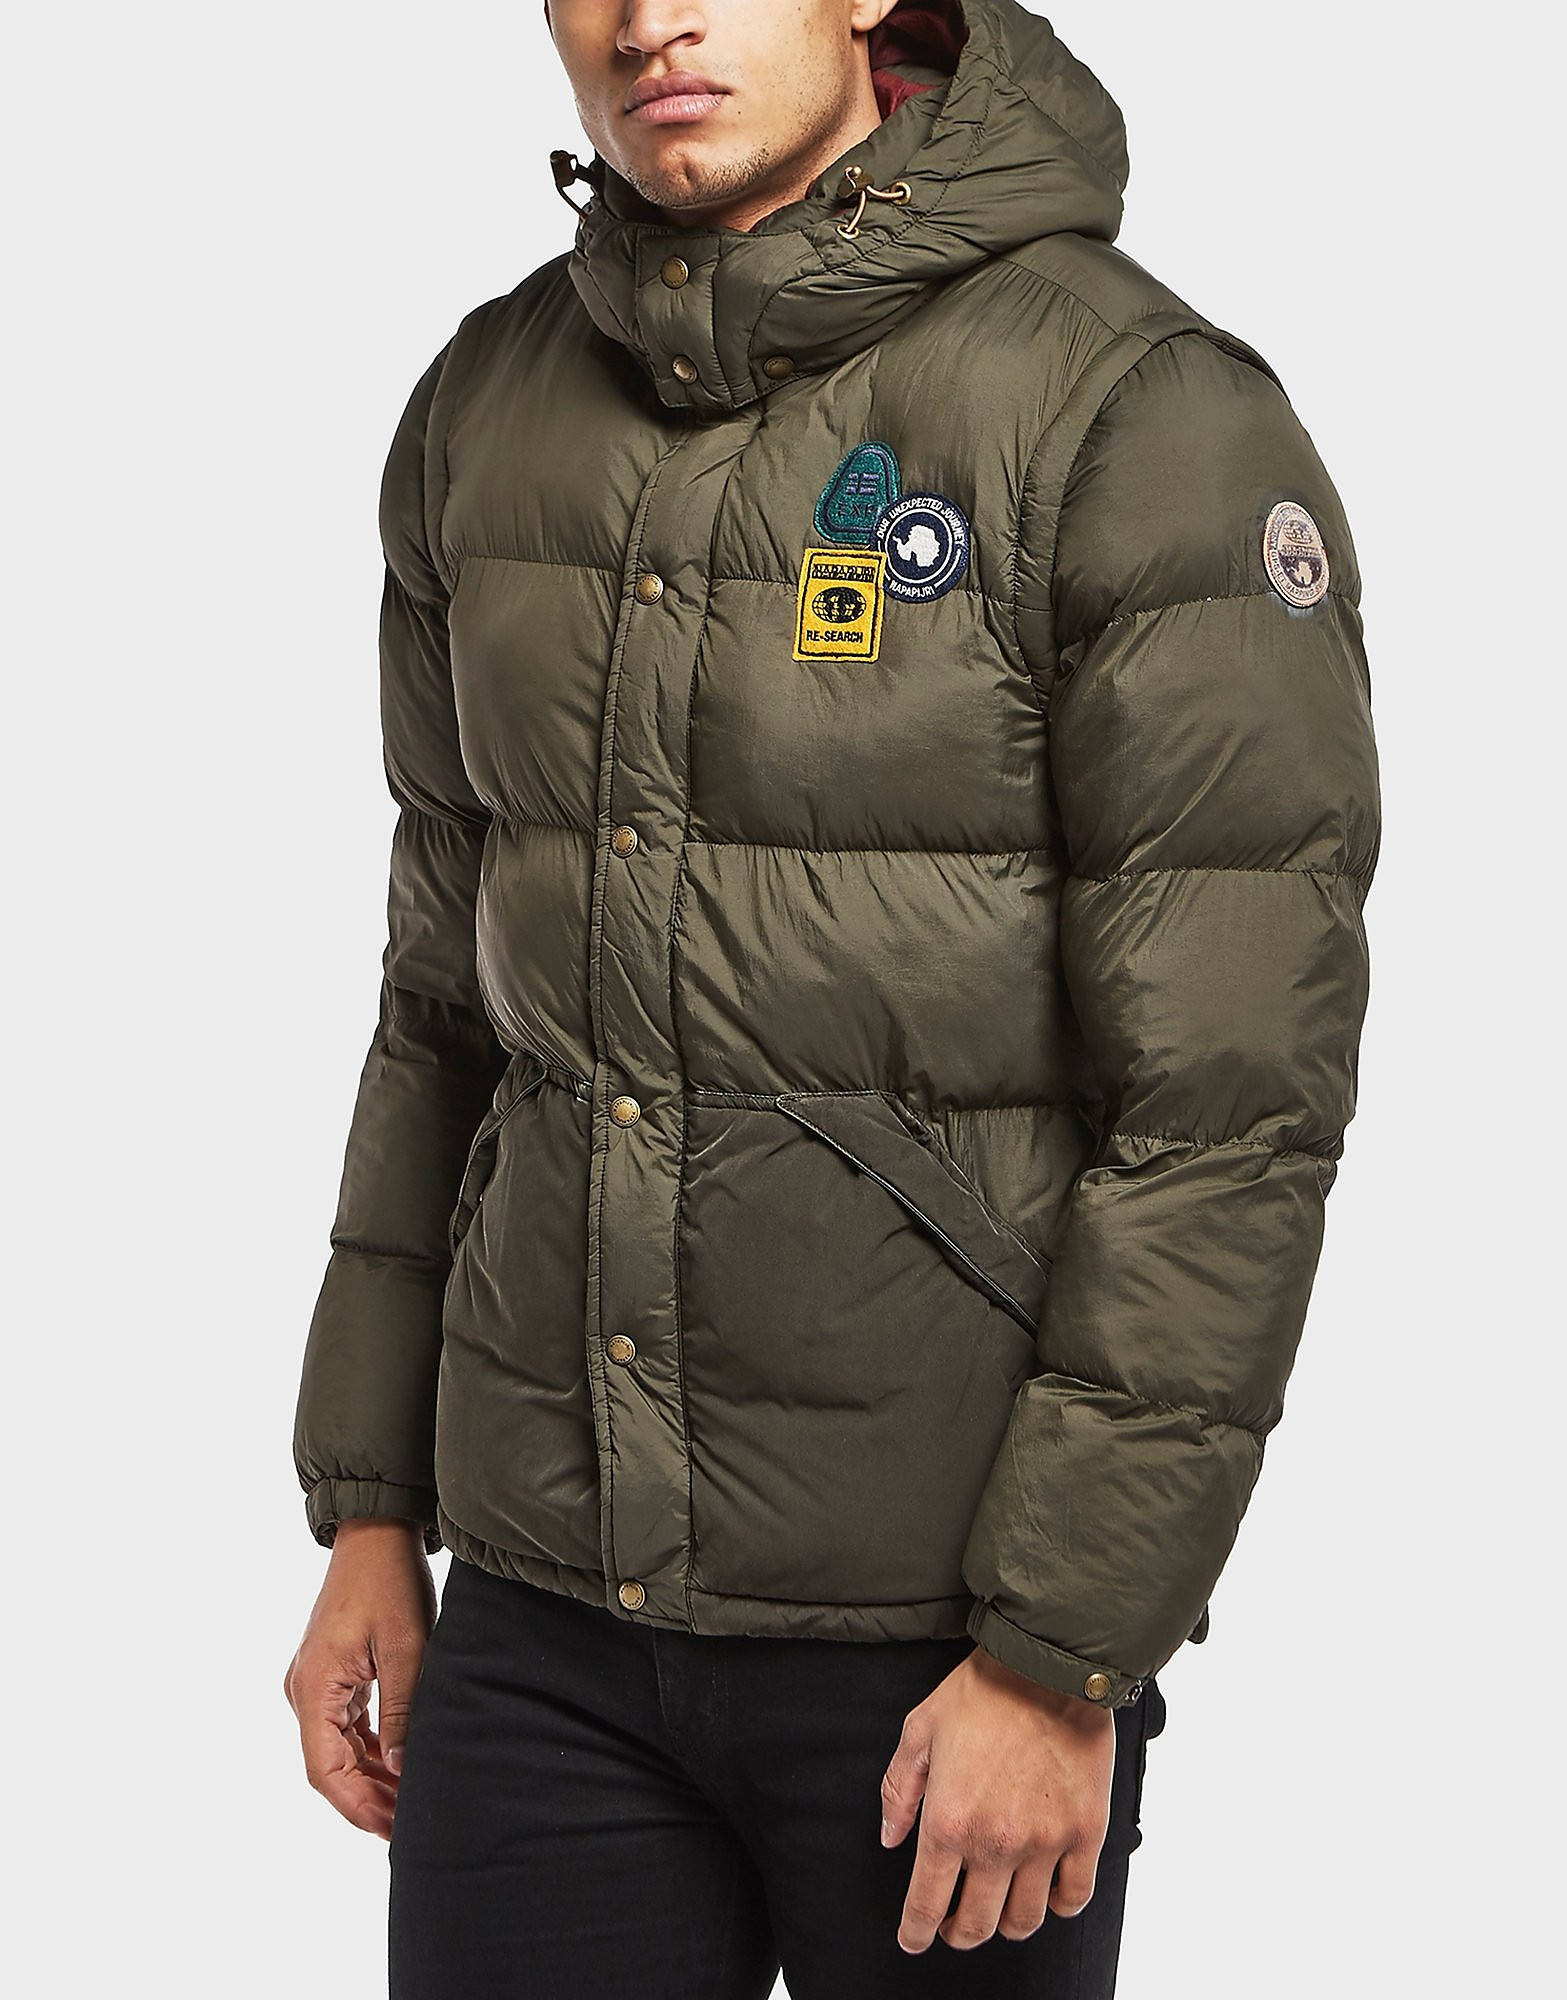 Napapijri Arctic Down Padded Jacket